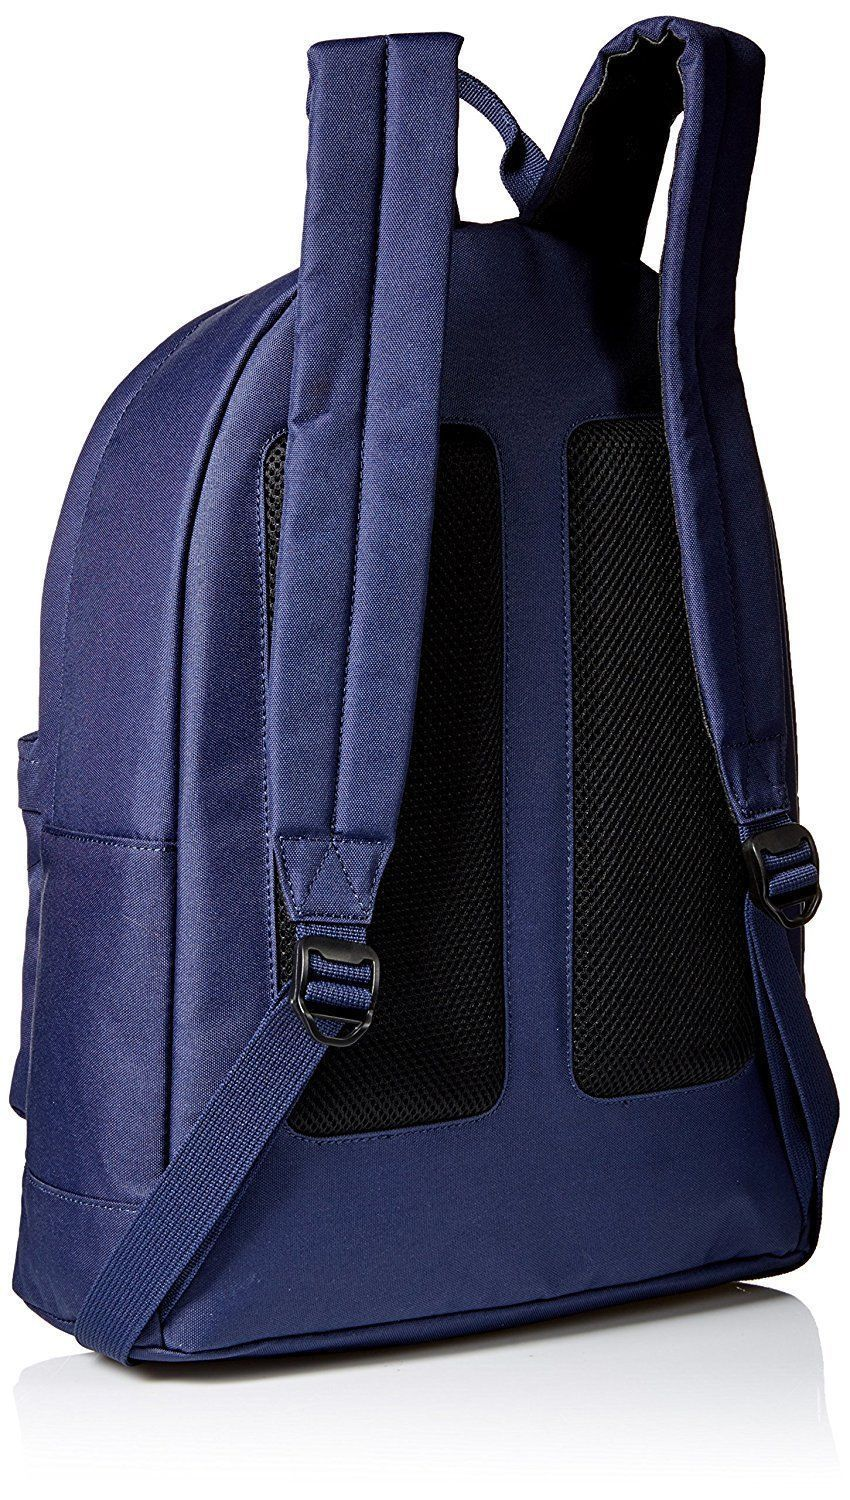 949415ec9bdd Lacoste Men s Neocroc Backpack Peacoat One Size 2day Delivery for ...